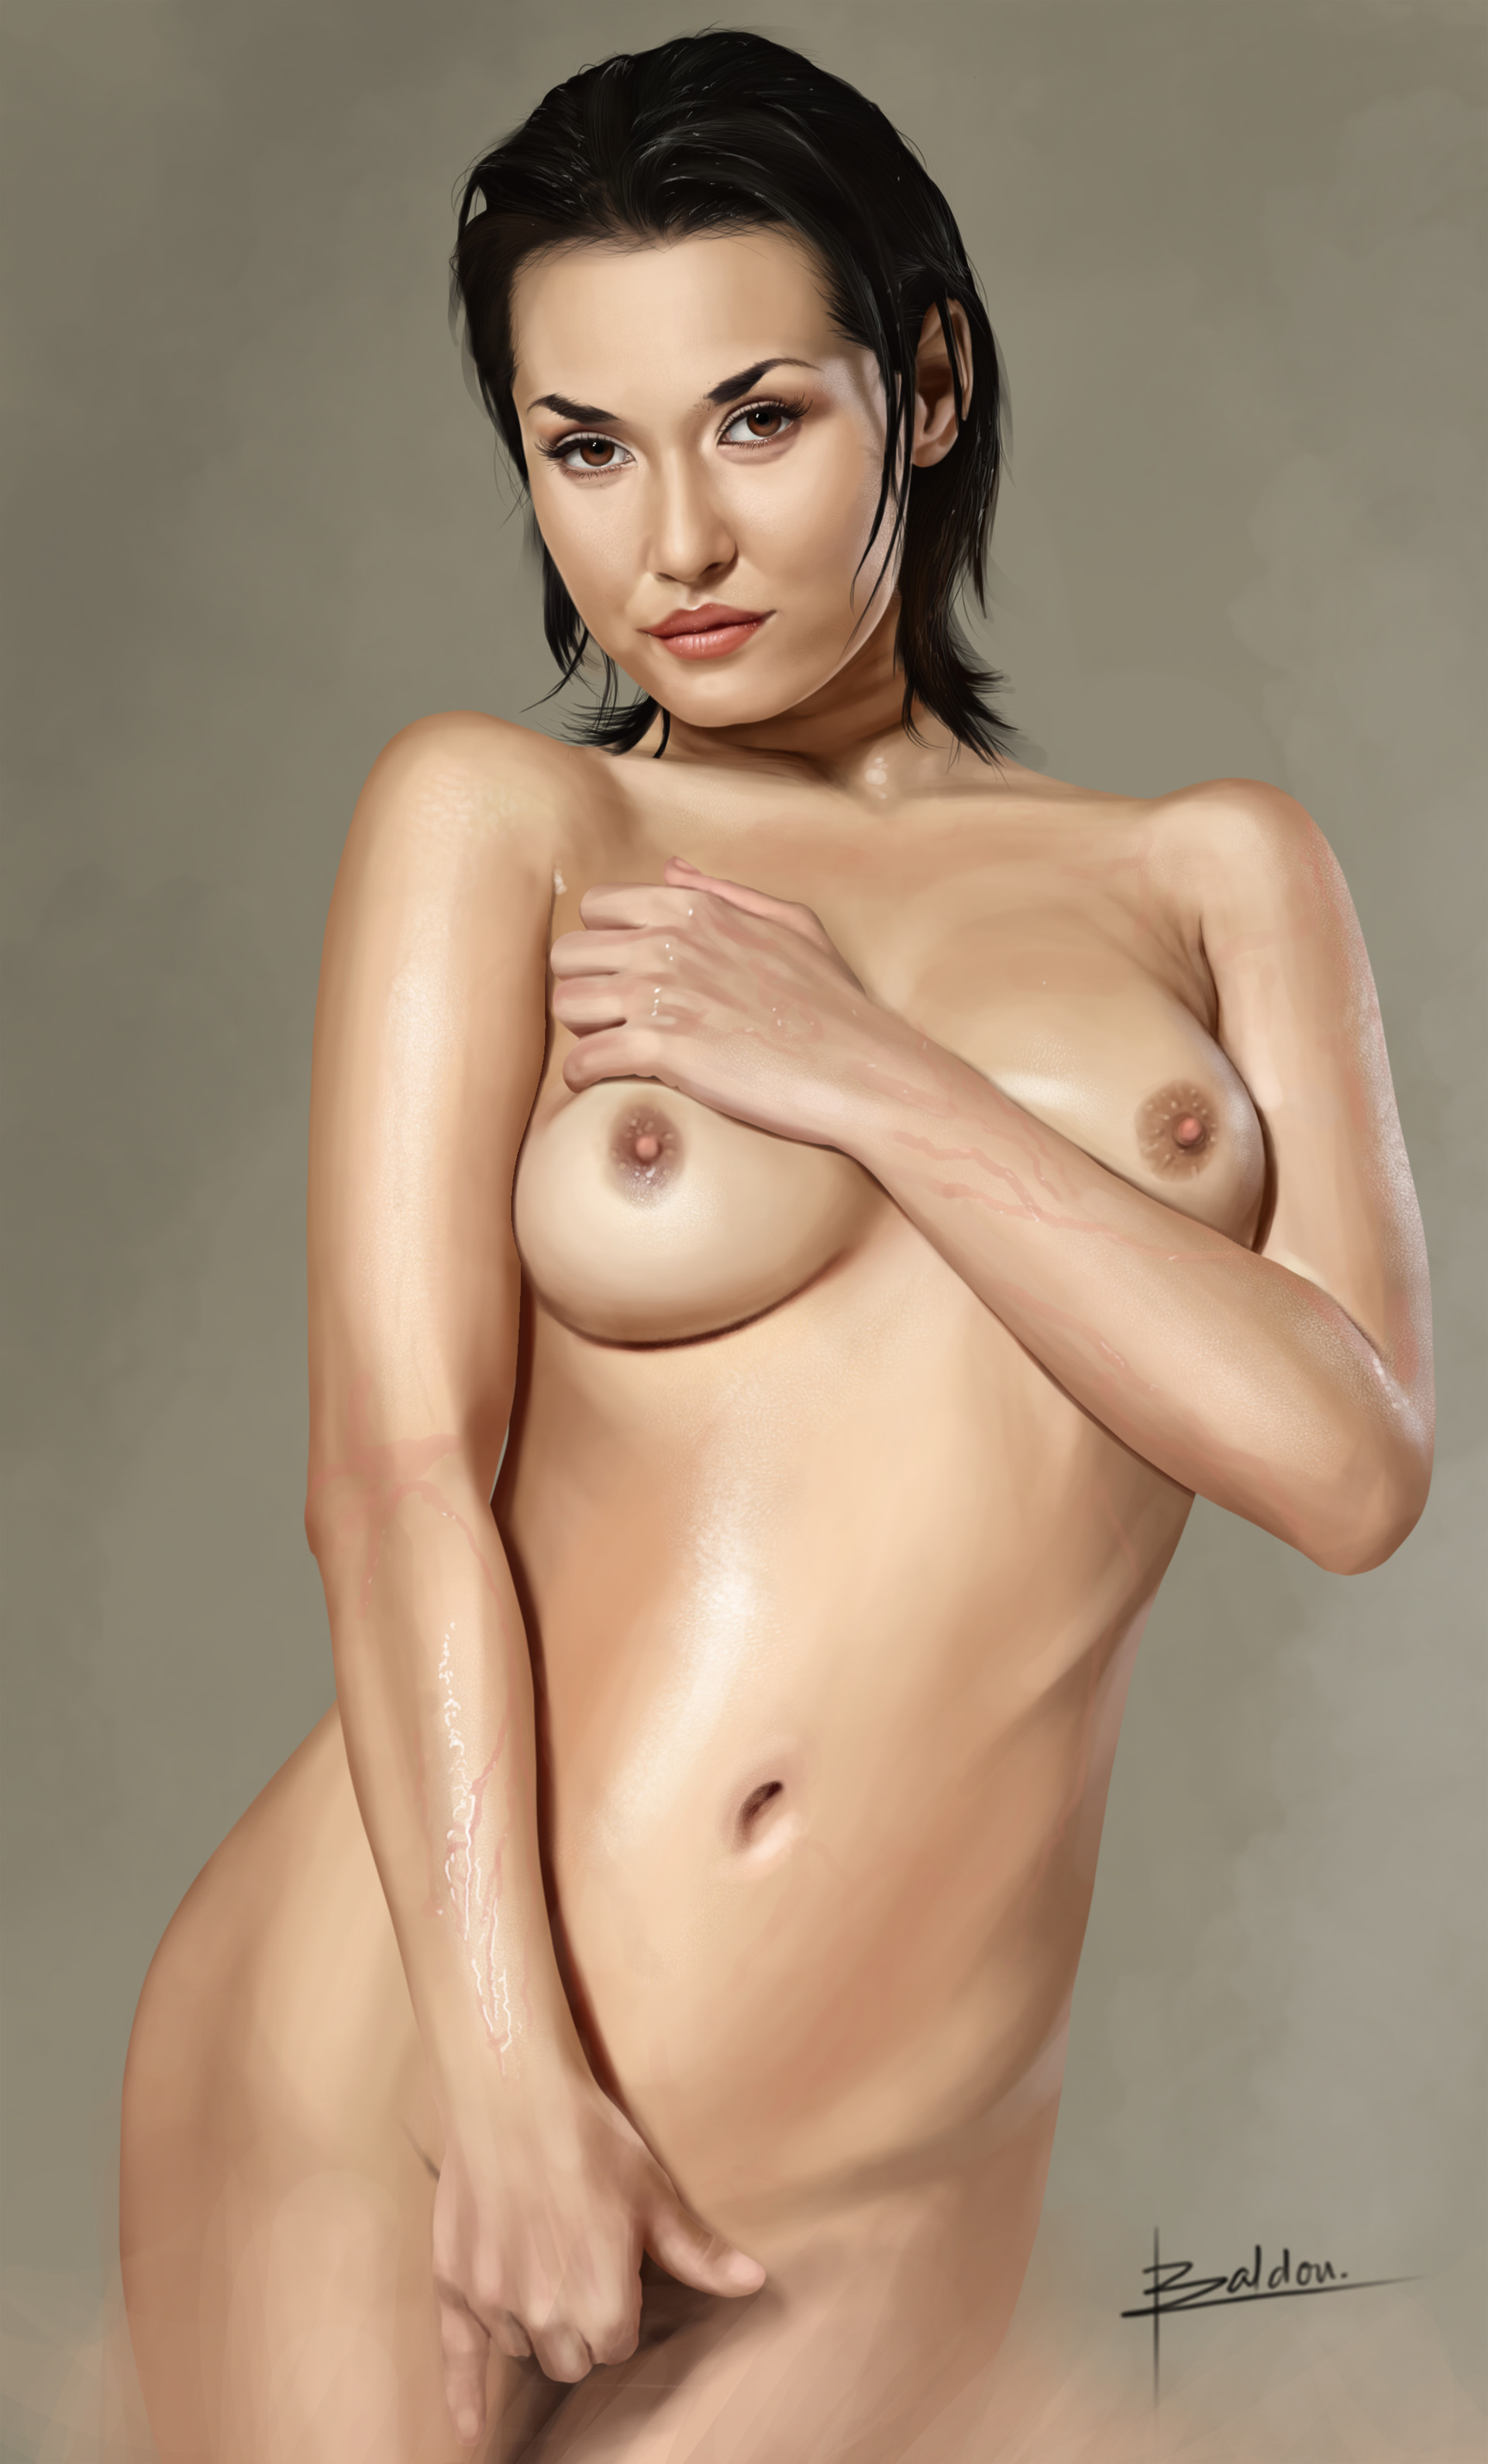 Maria ozawa naked girls — photo 7